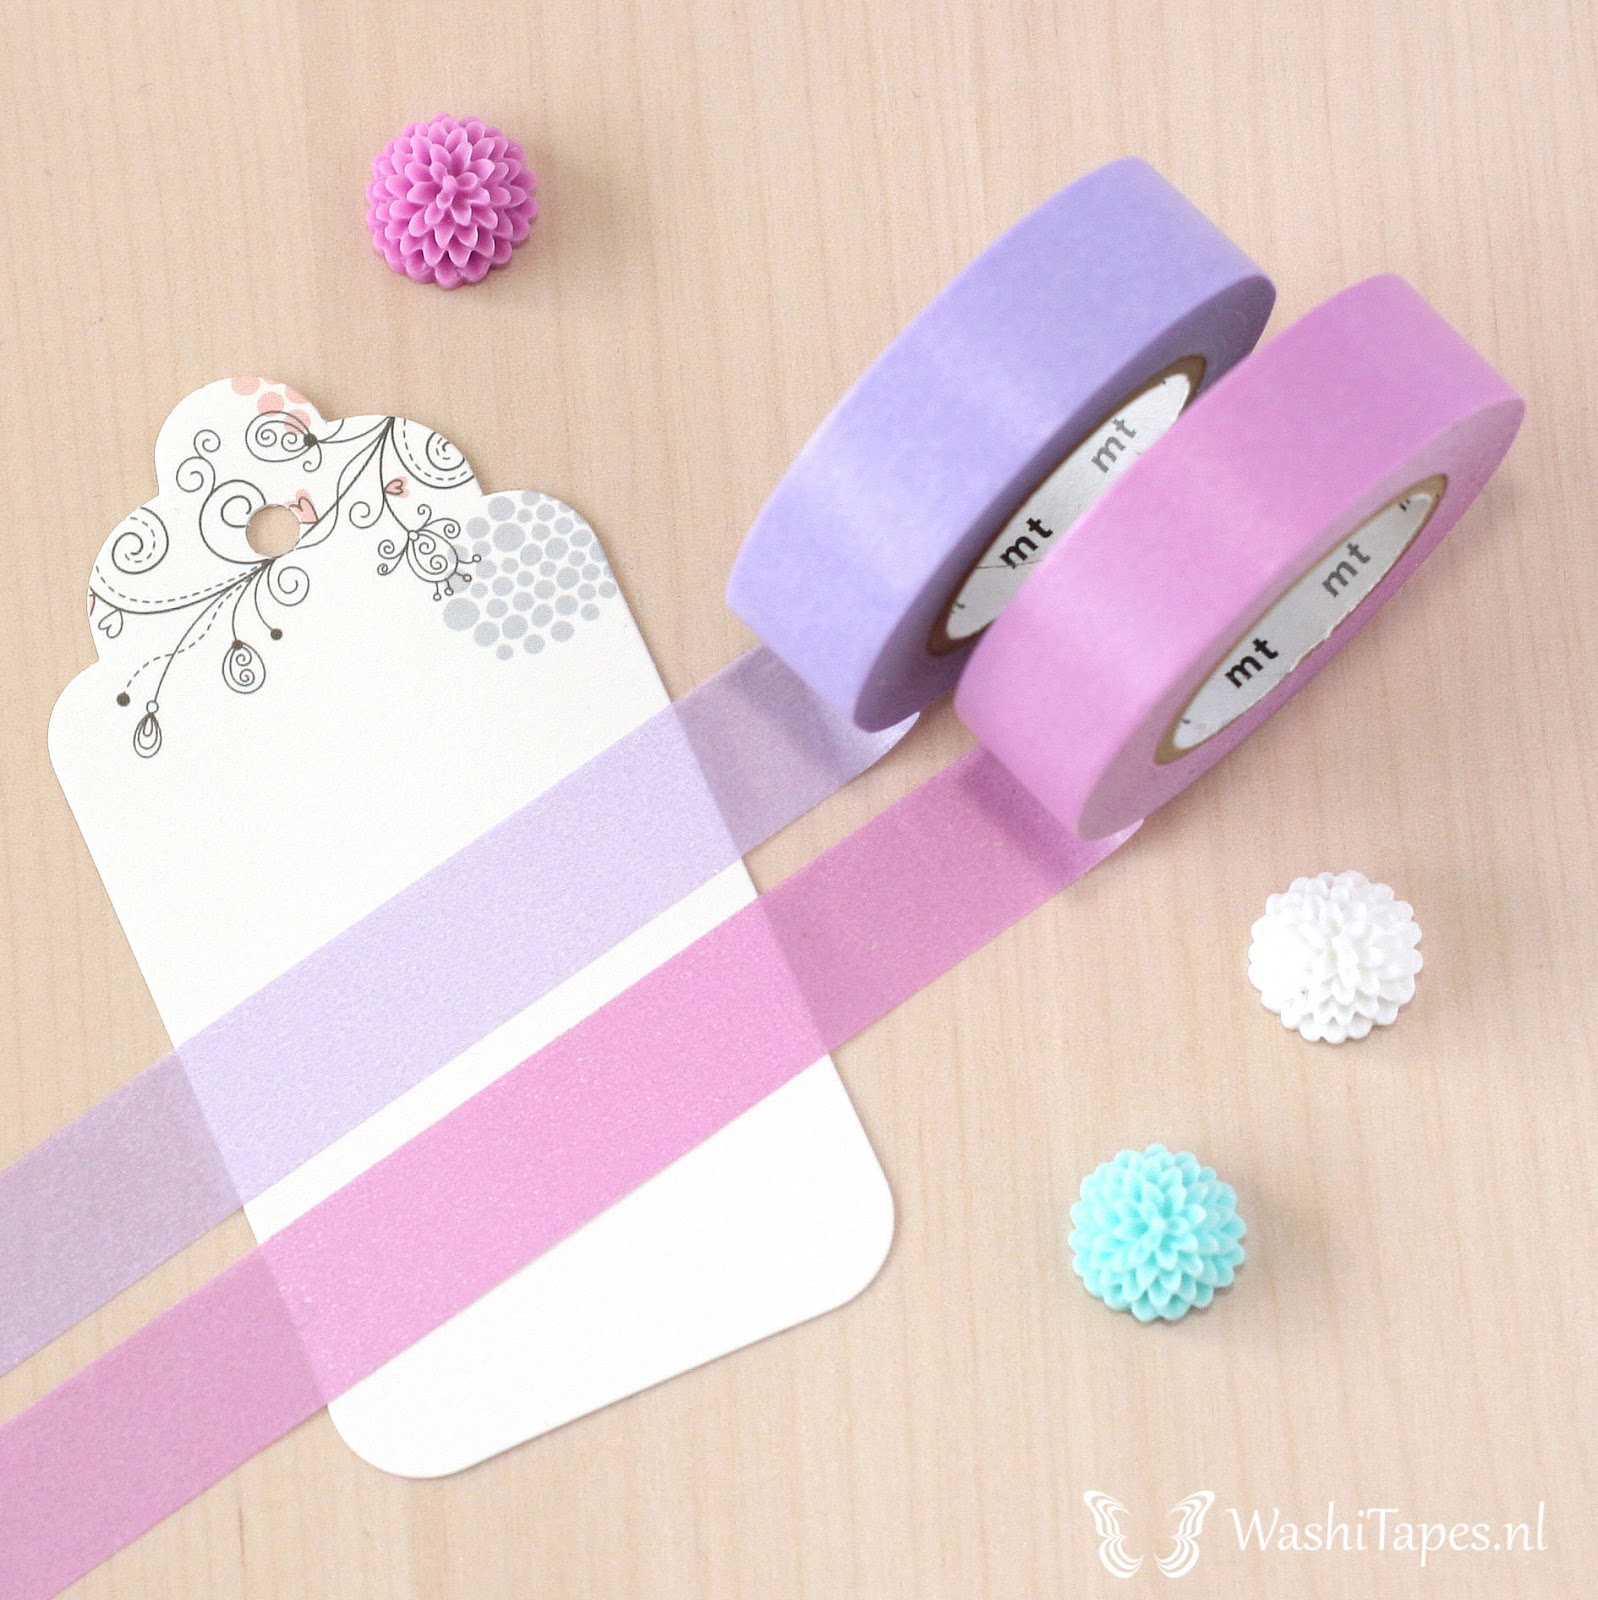 Radiant Orchid mt Washi Tape Set - 2 x 15 meters | WashiTapesNL www.washitapes.nl